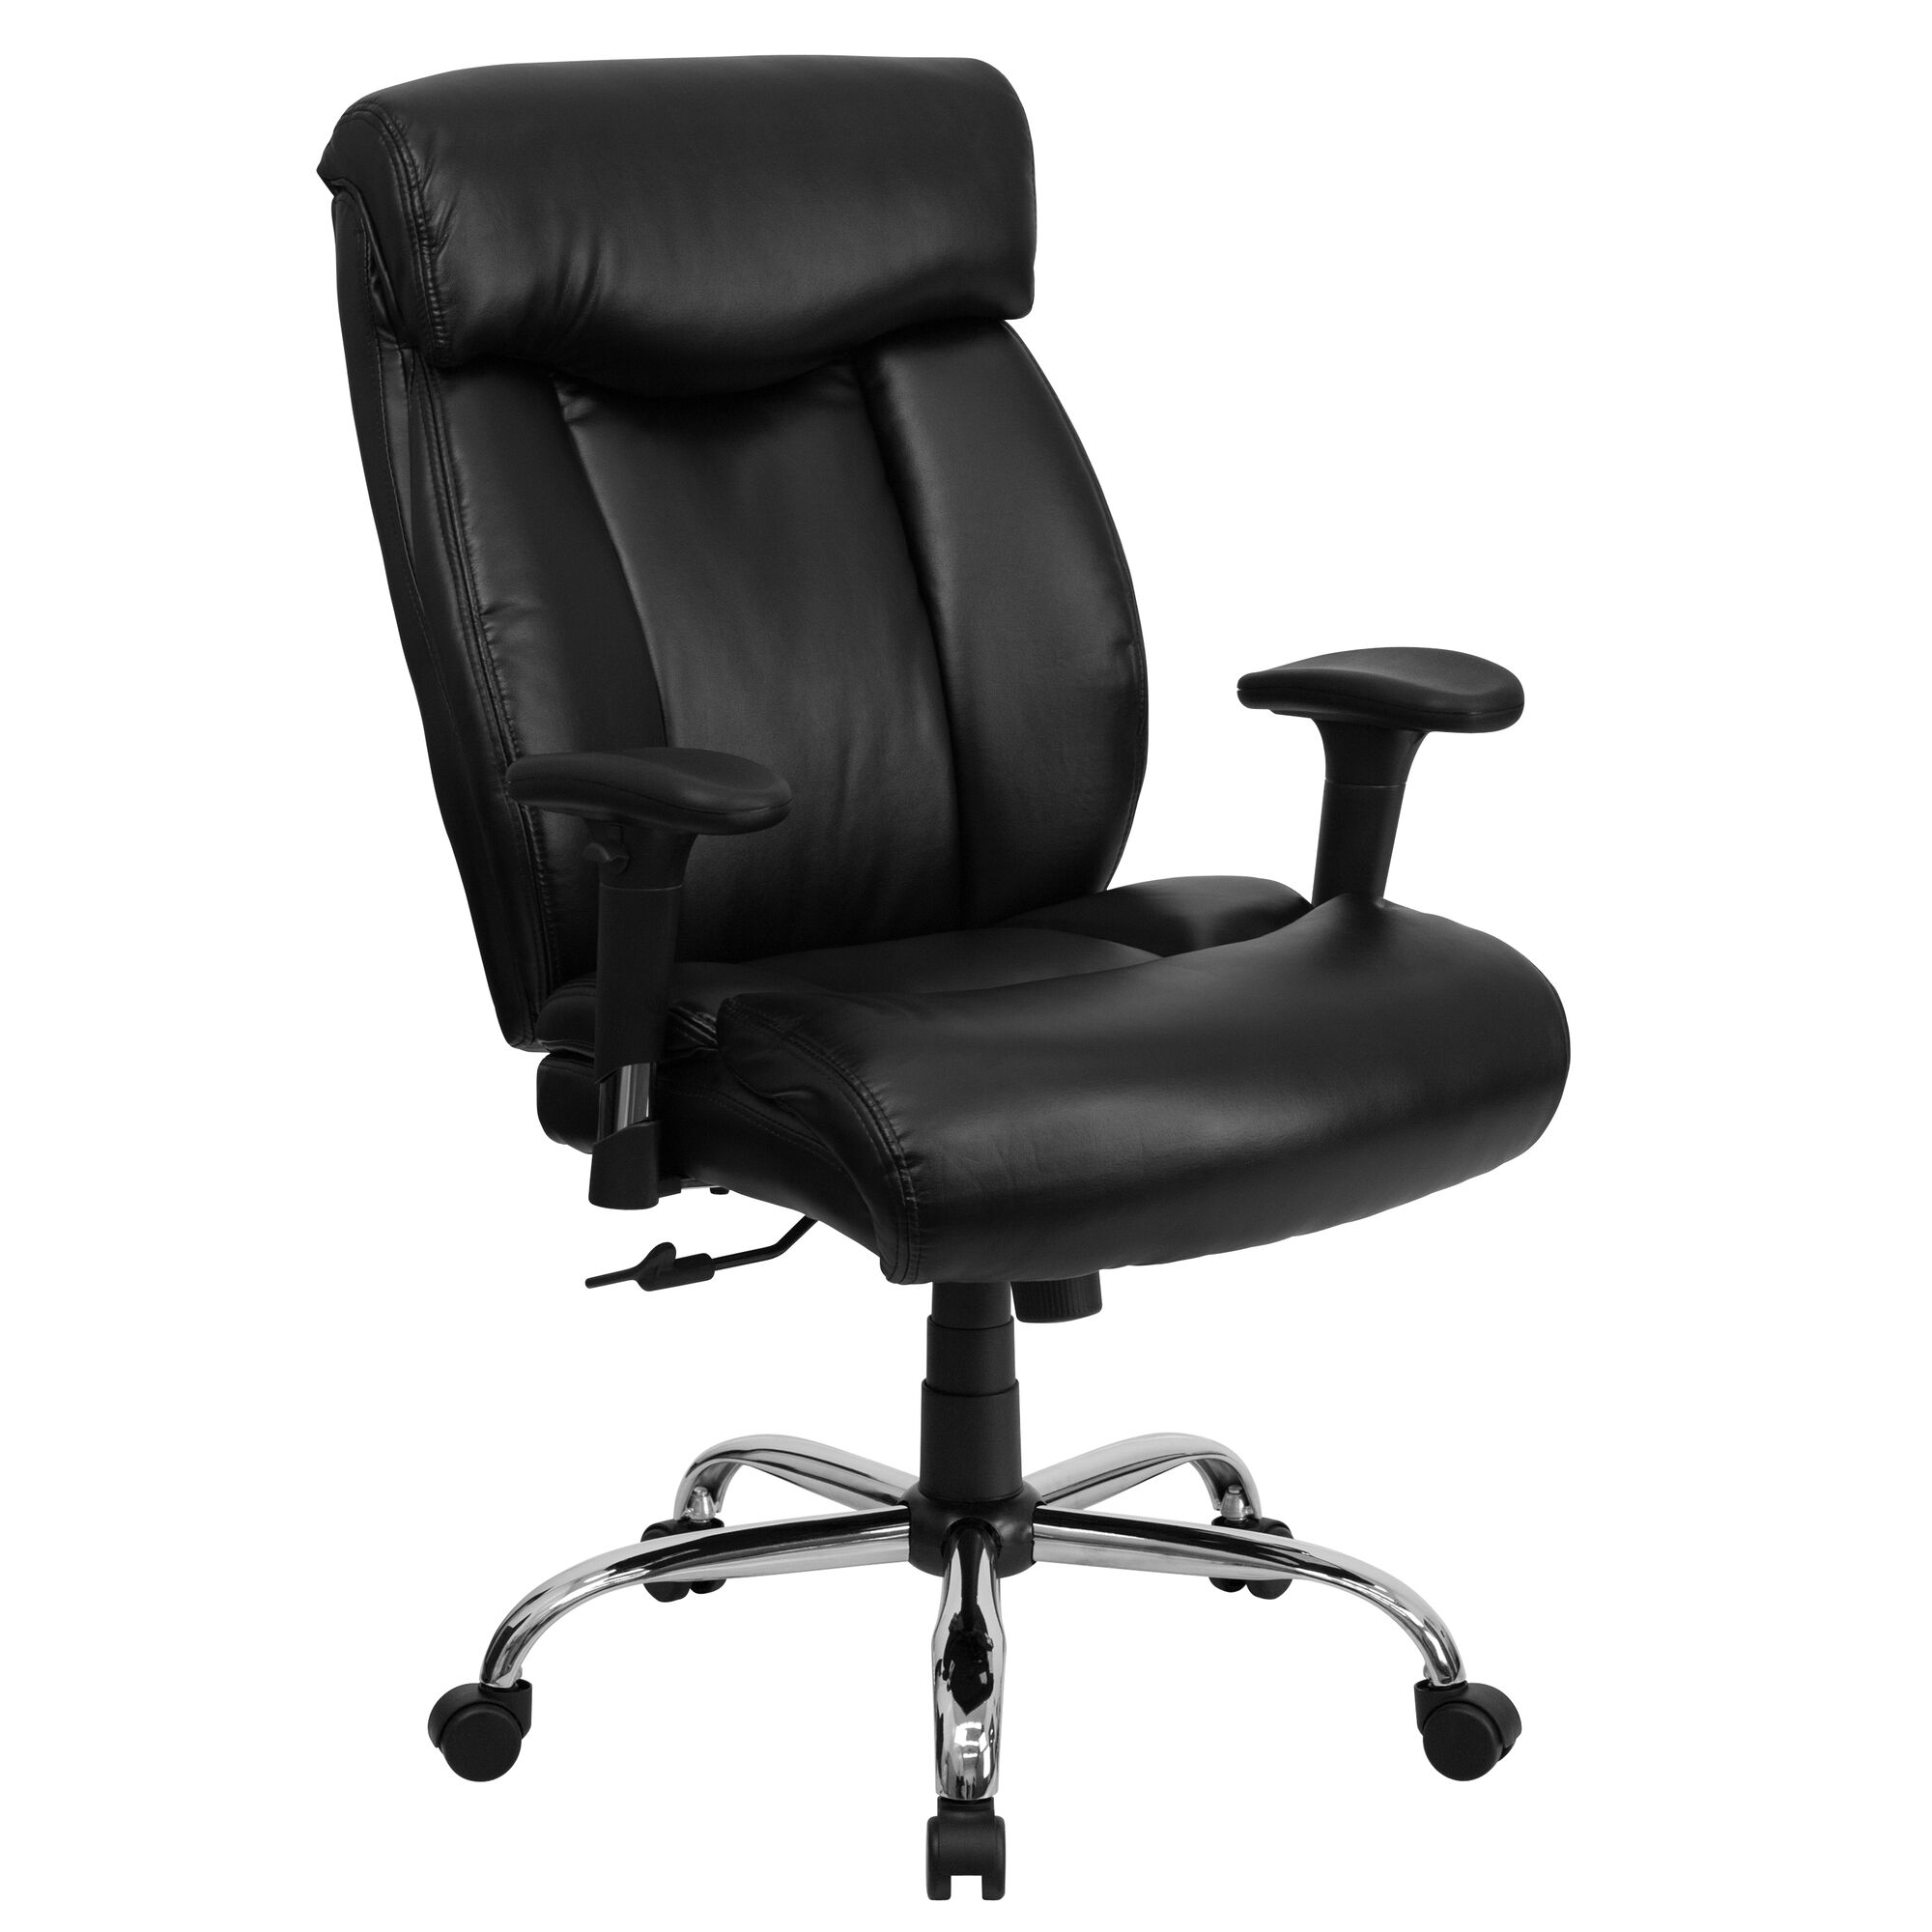 Our HERCULES Series Big & Tall 400 Lb. Rated Black Leather